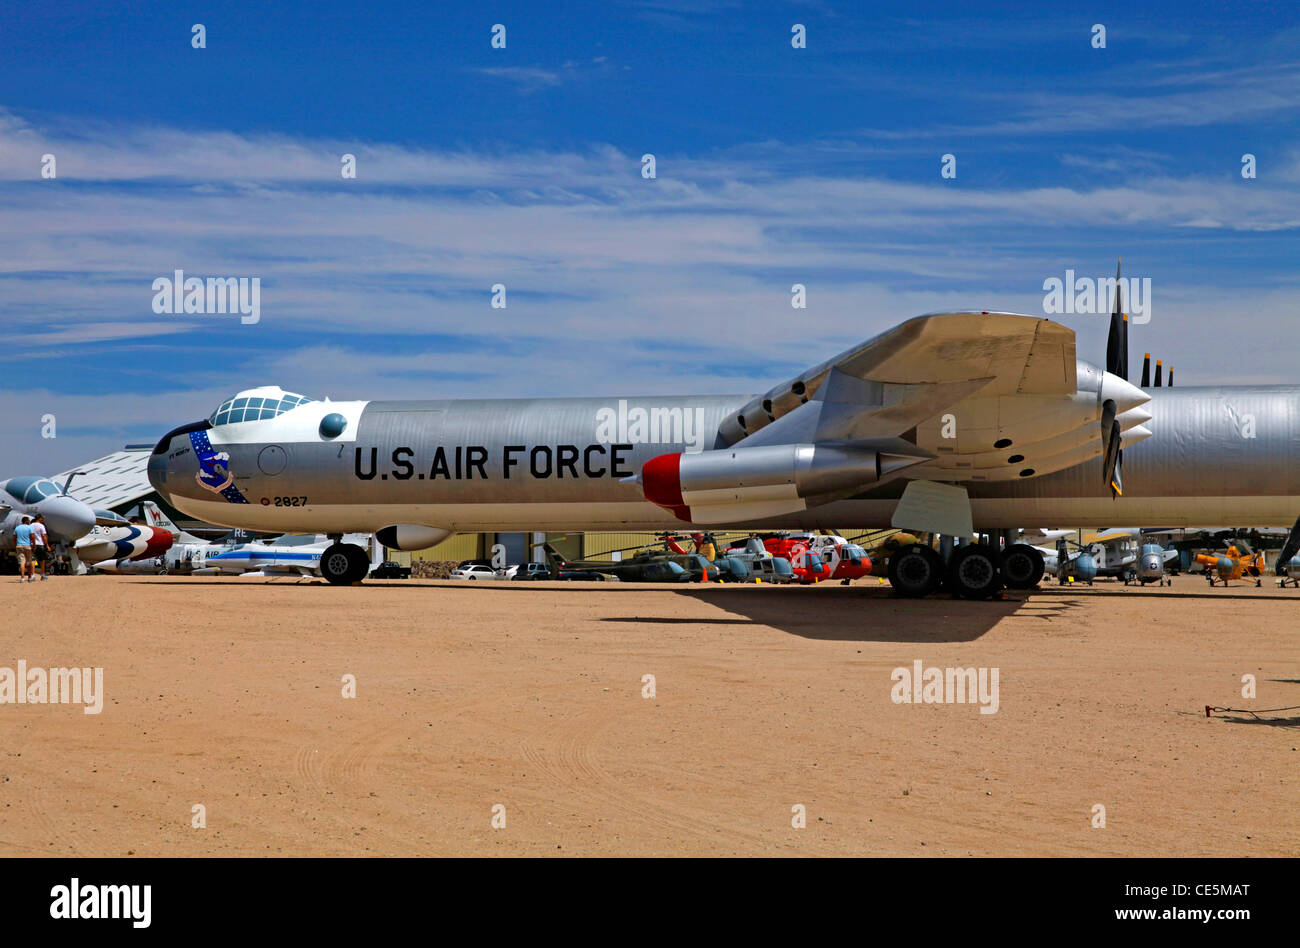 The Convair B-36 Peacemaker strategic bomber aircraft on display at Pima Museum - Stock Image